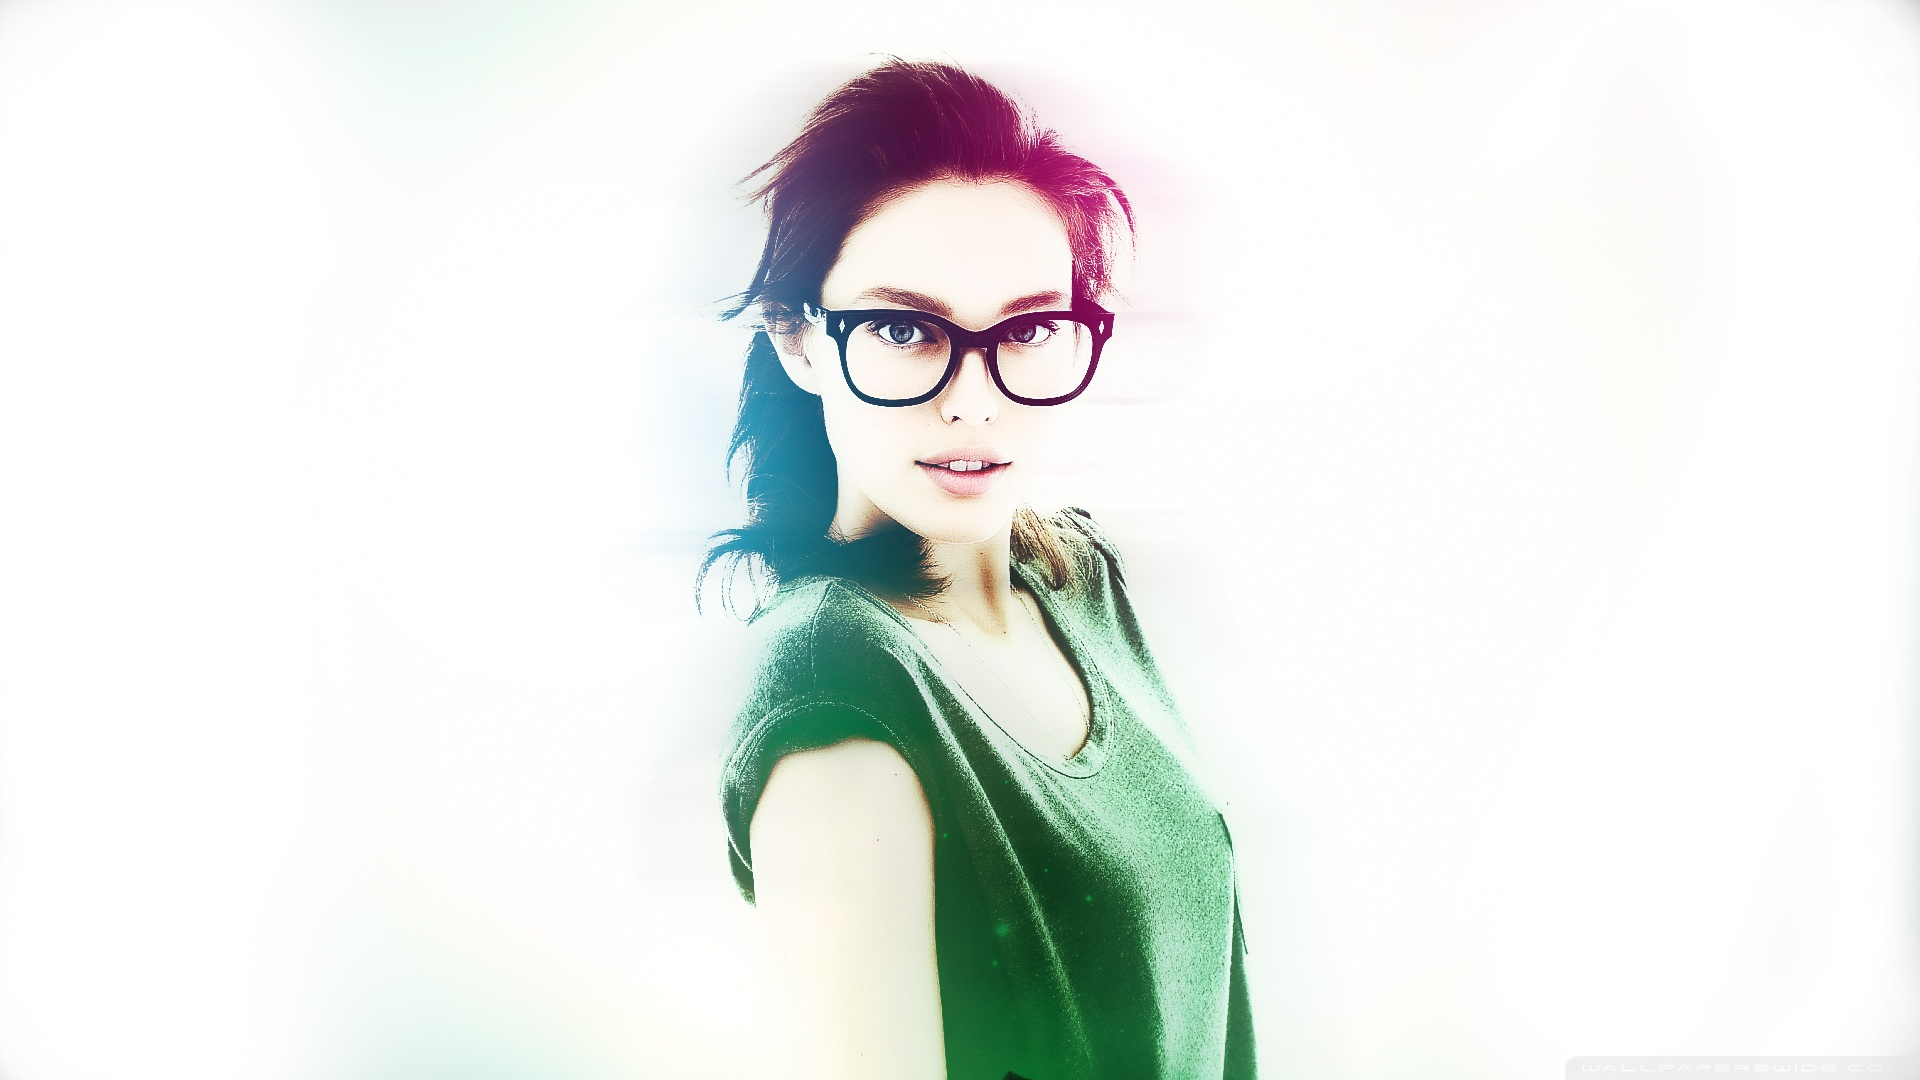 Related Wallpapers - Girl With Glasses Hd , HD Wallpaper & Backgrounds